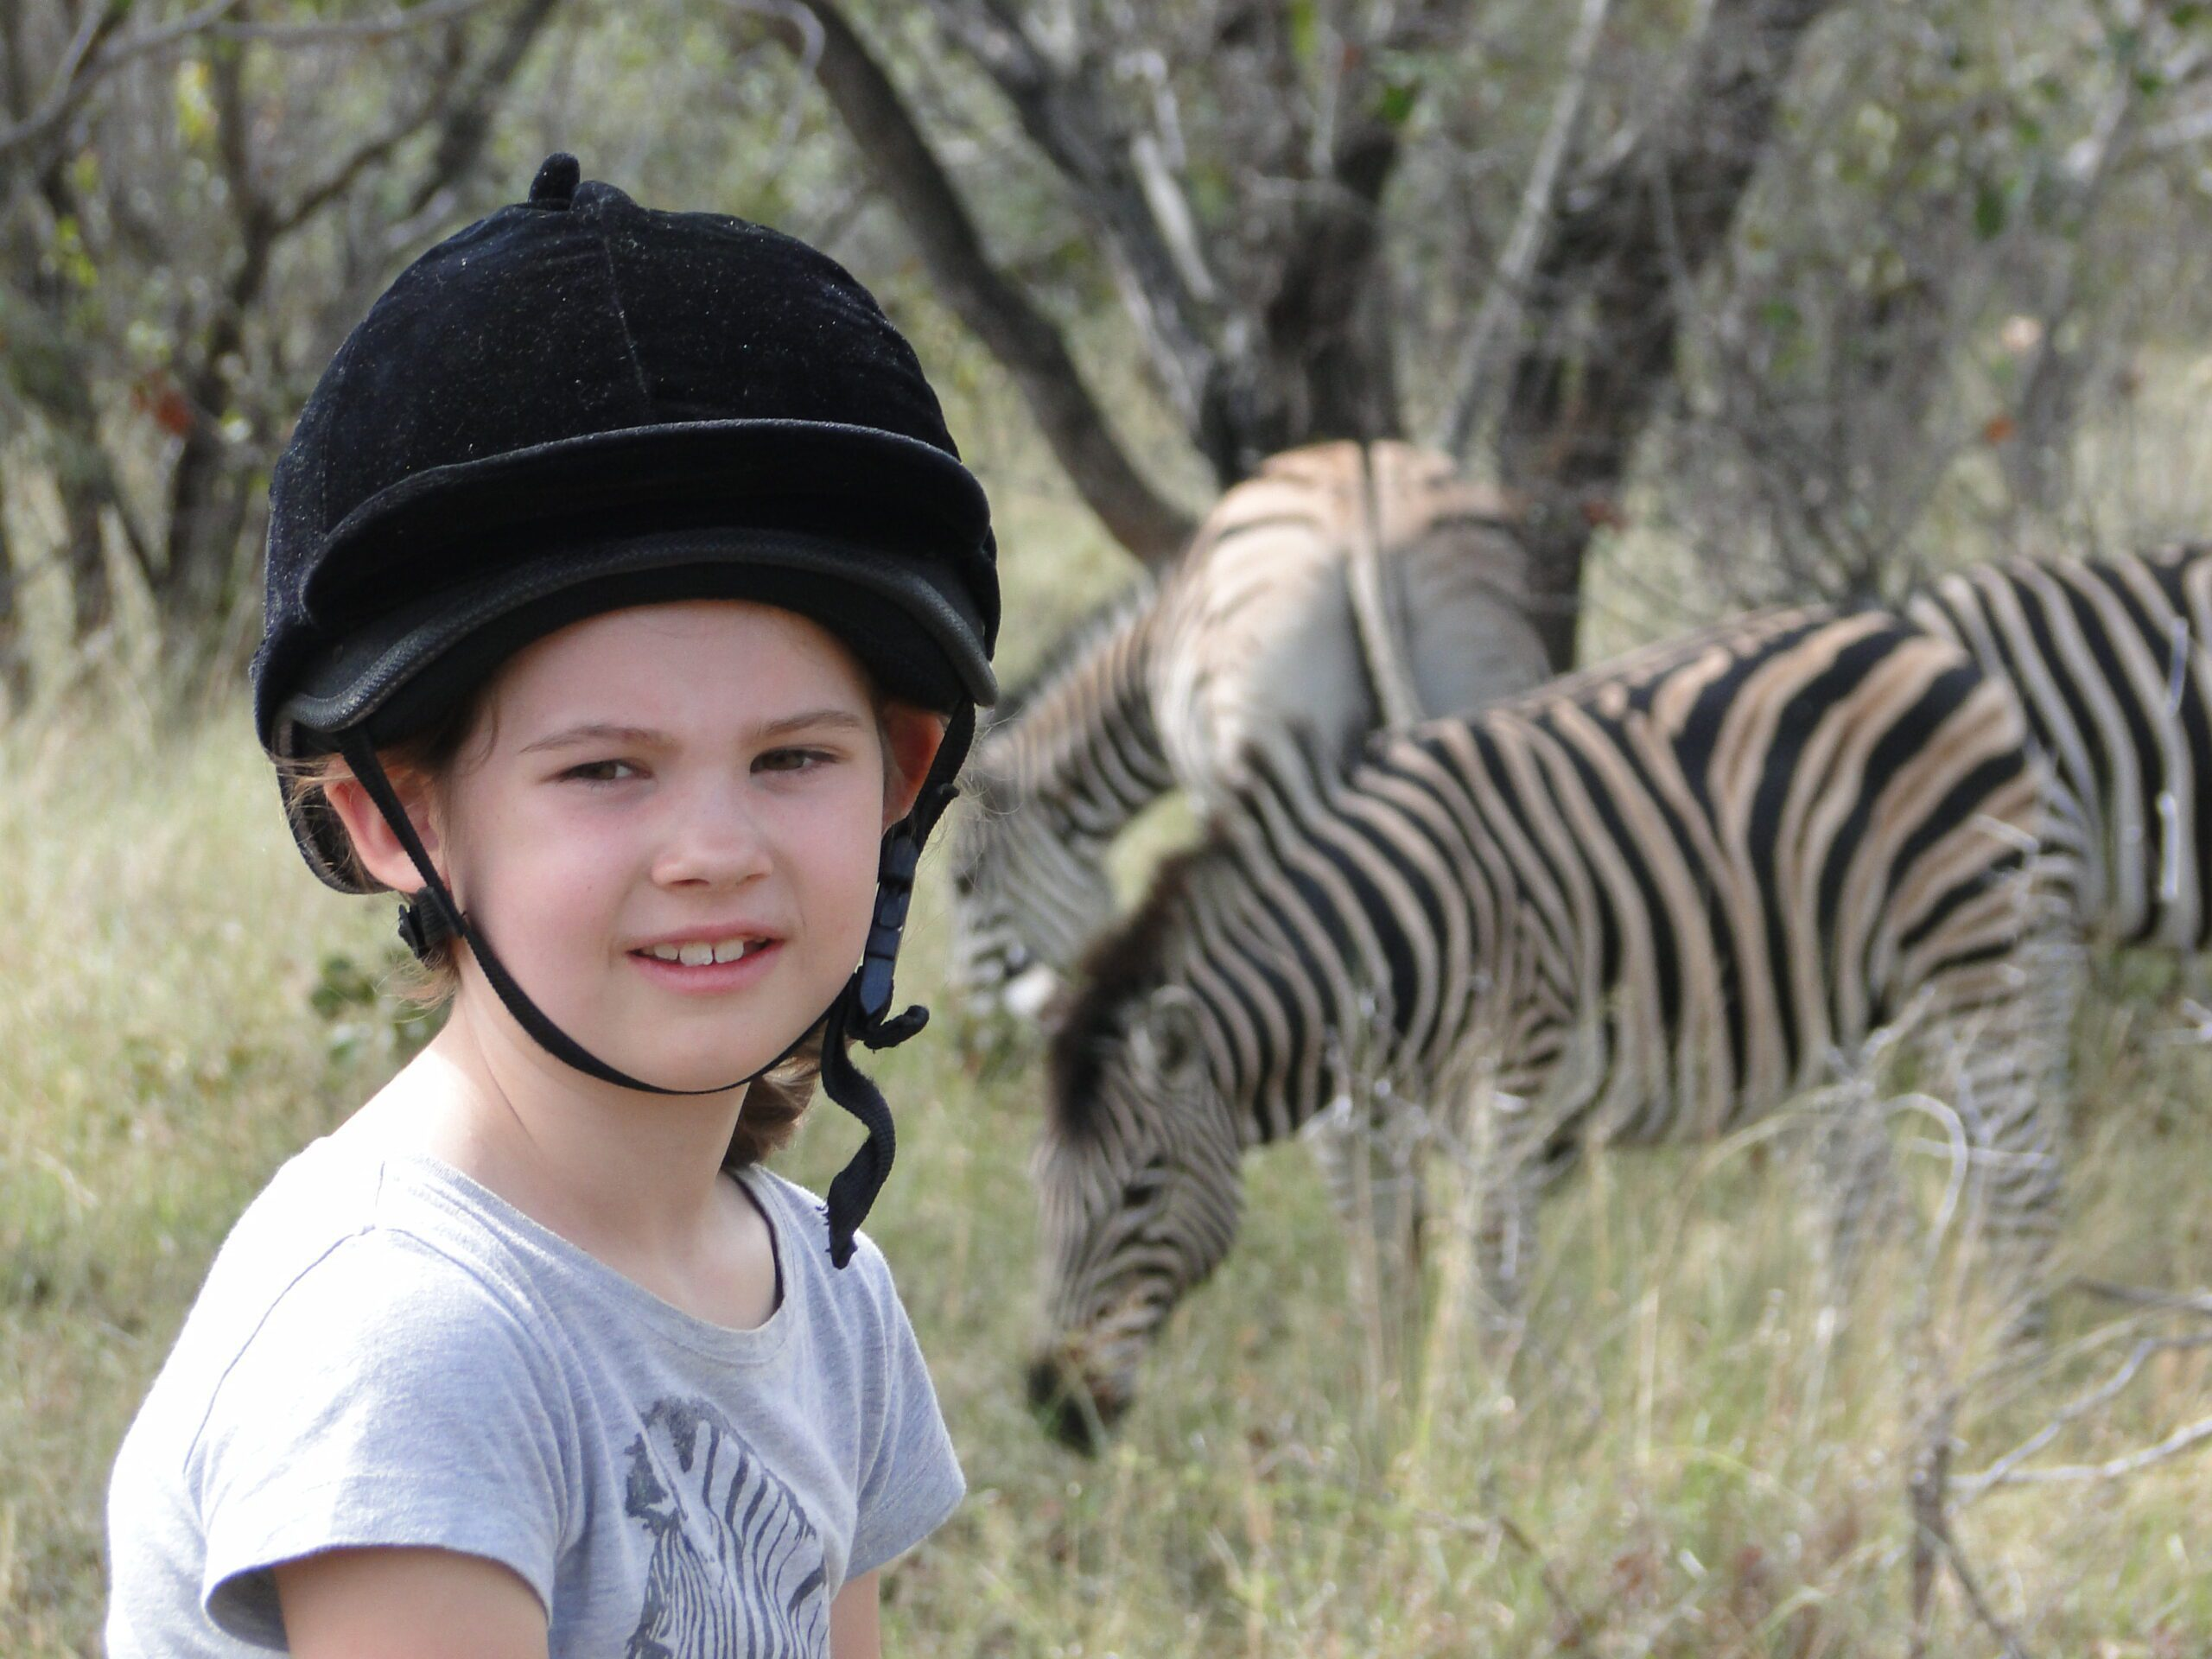 a young girl in a t-shirt wearing a riding helmet stops to pose for a photo in front of two zebra in the bush safari on horseback